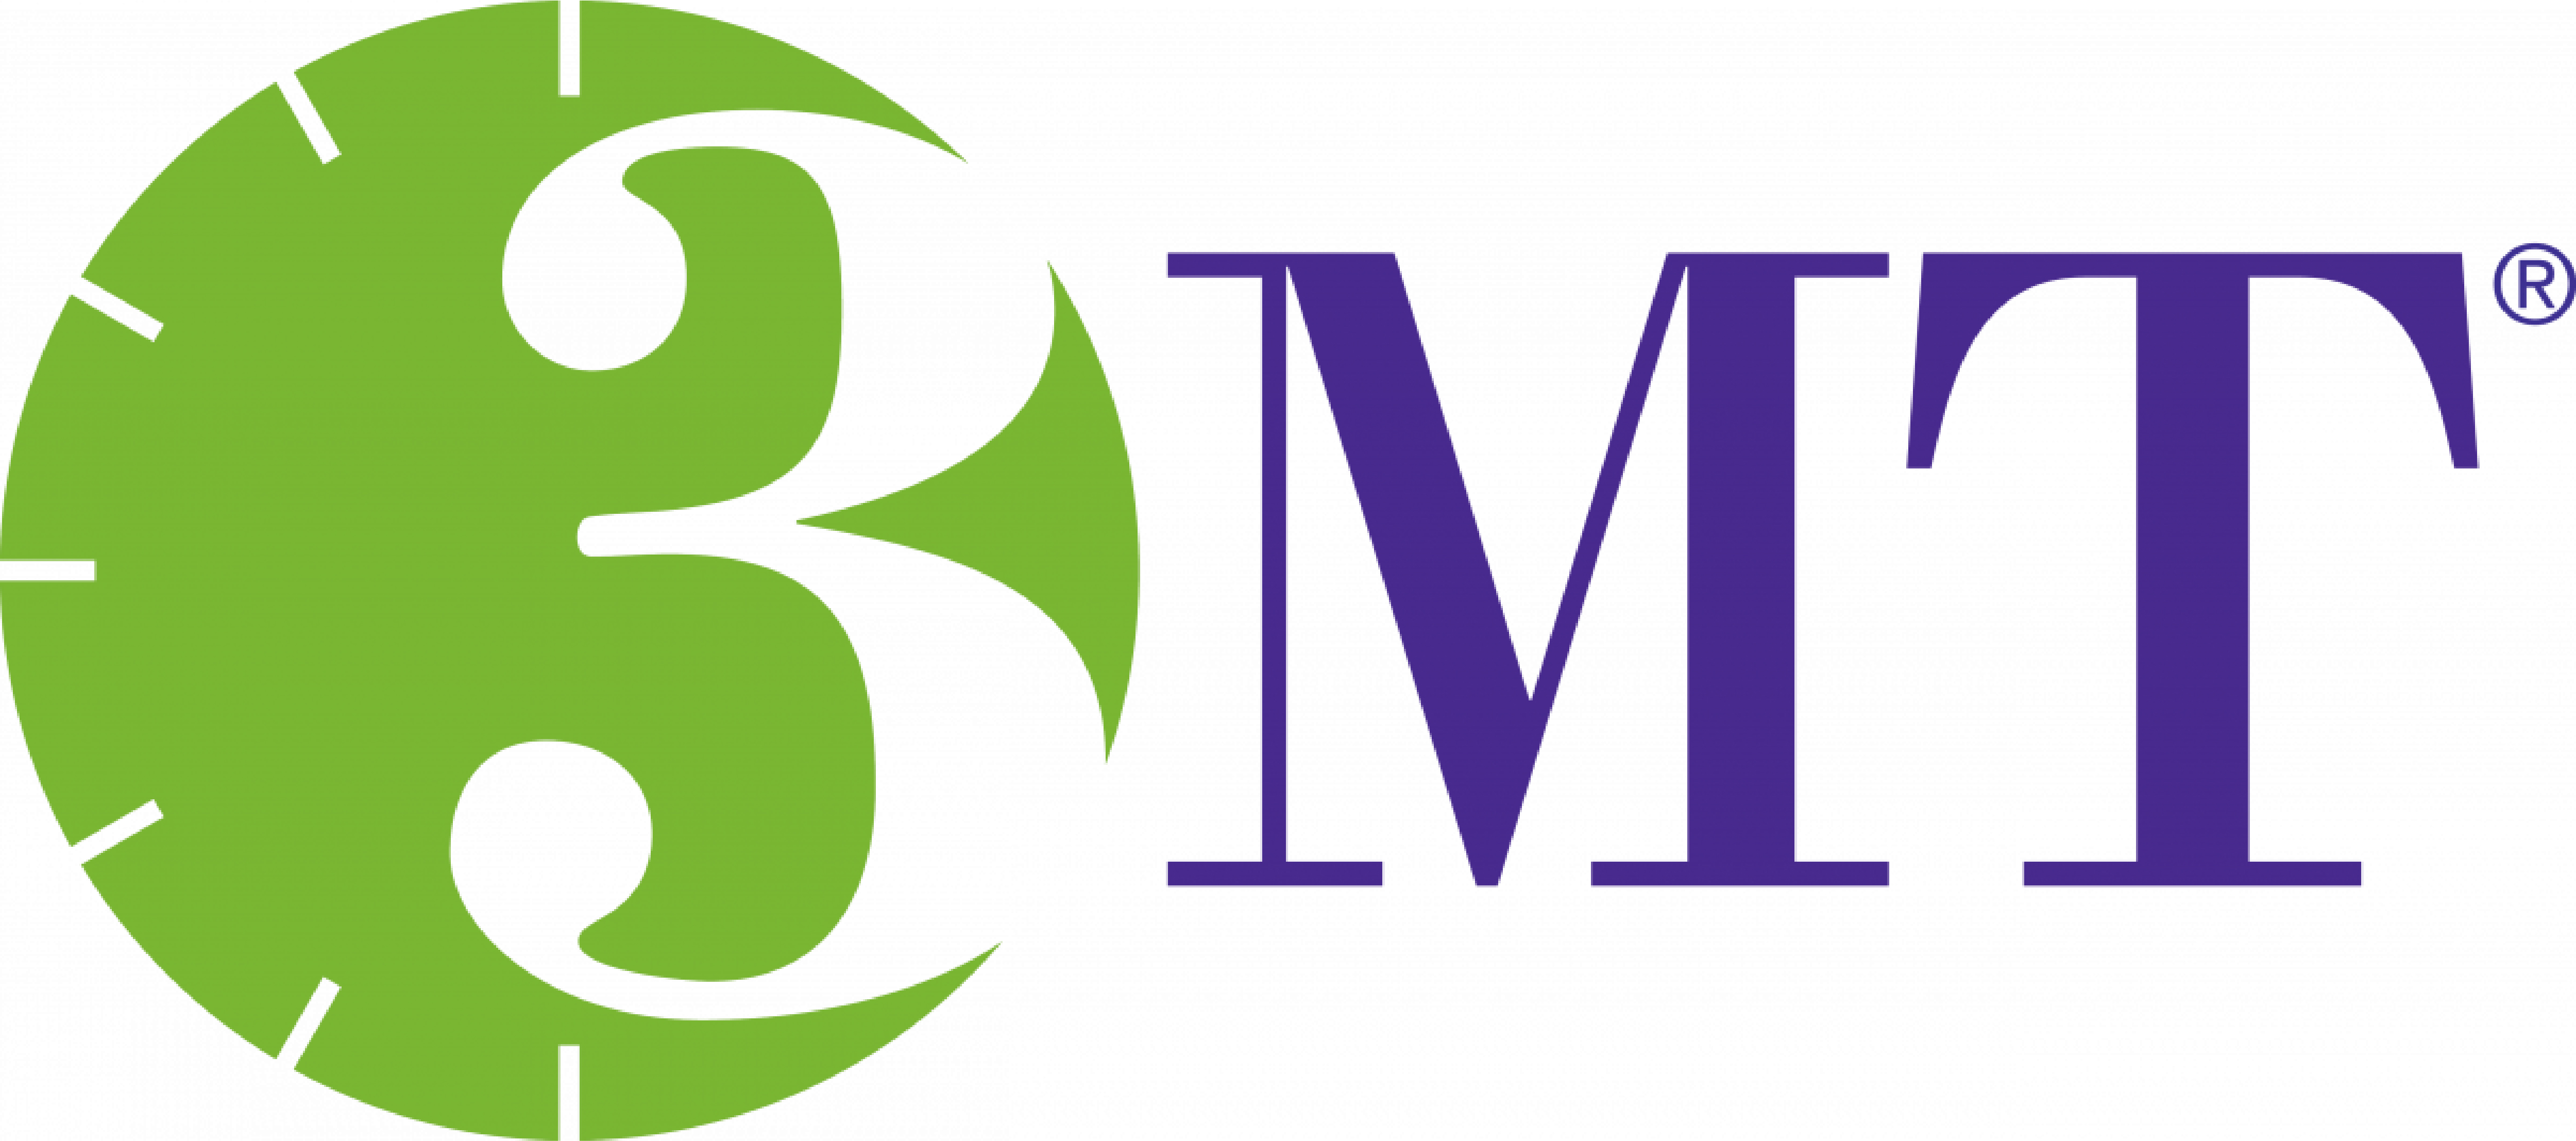 color 3-minute thesis logo